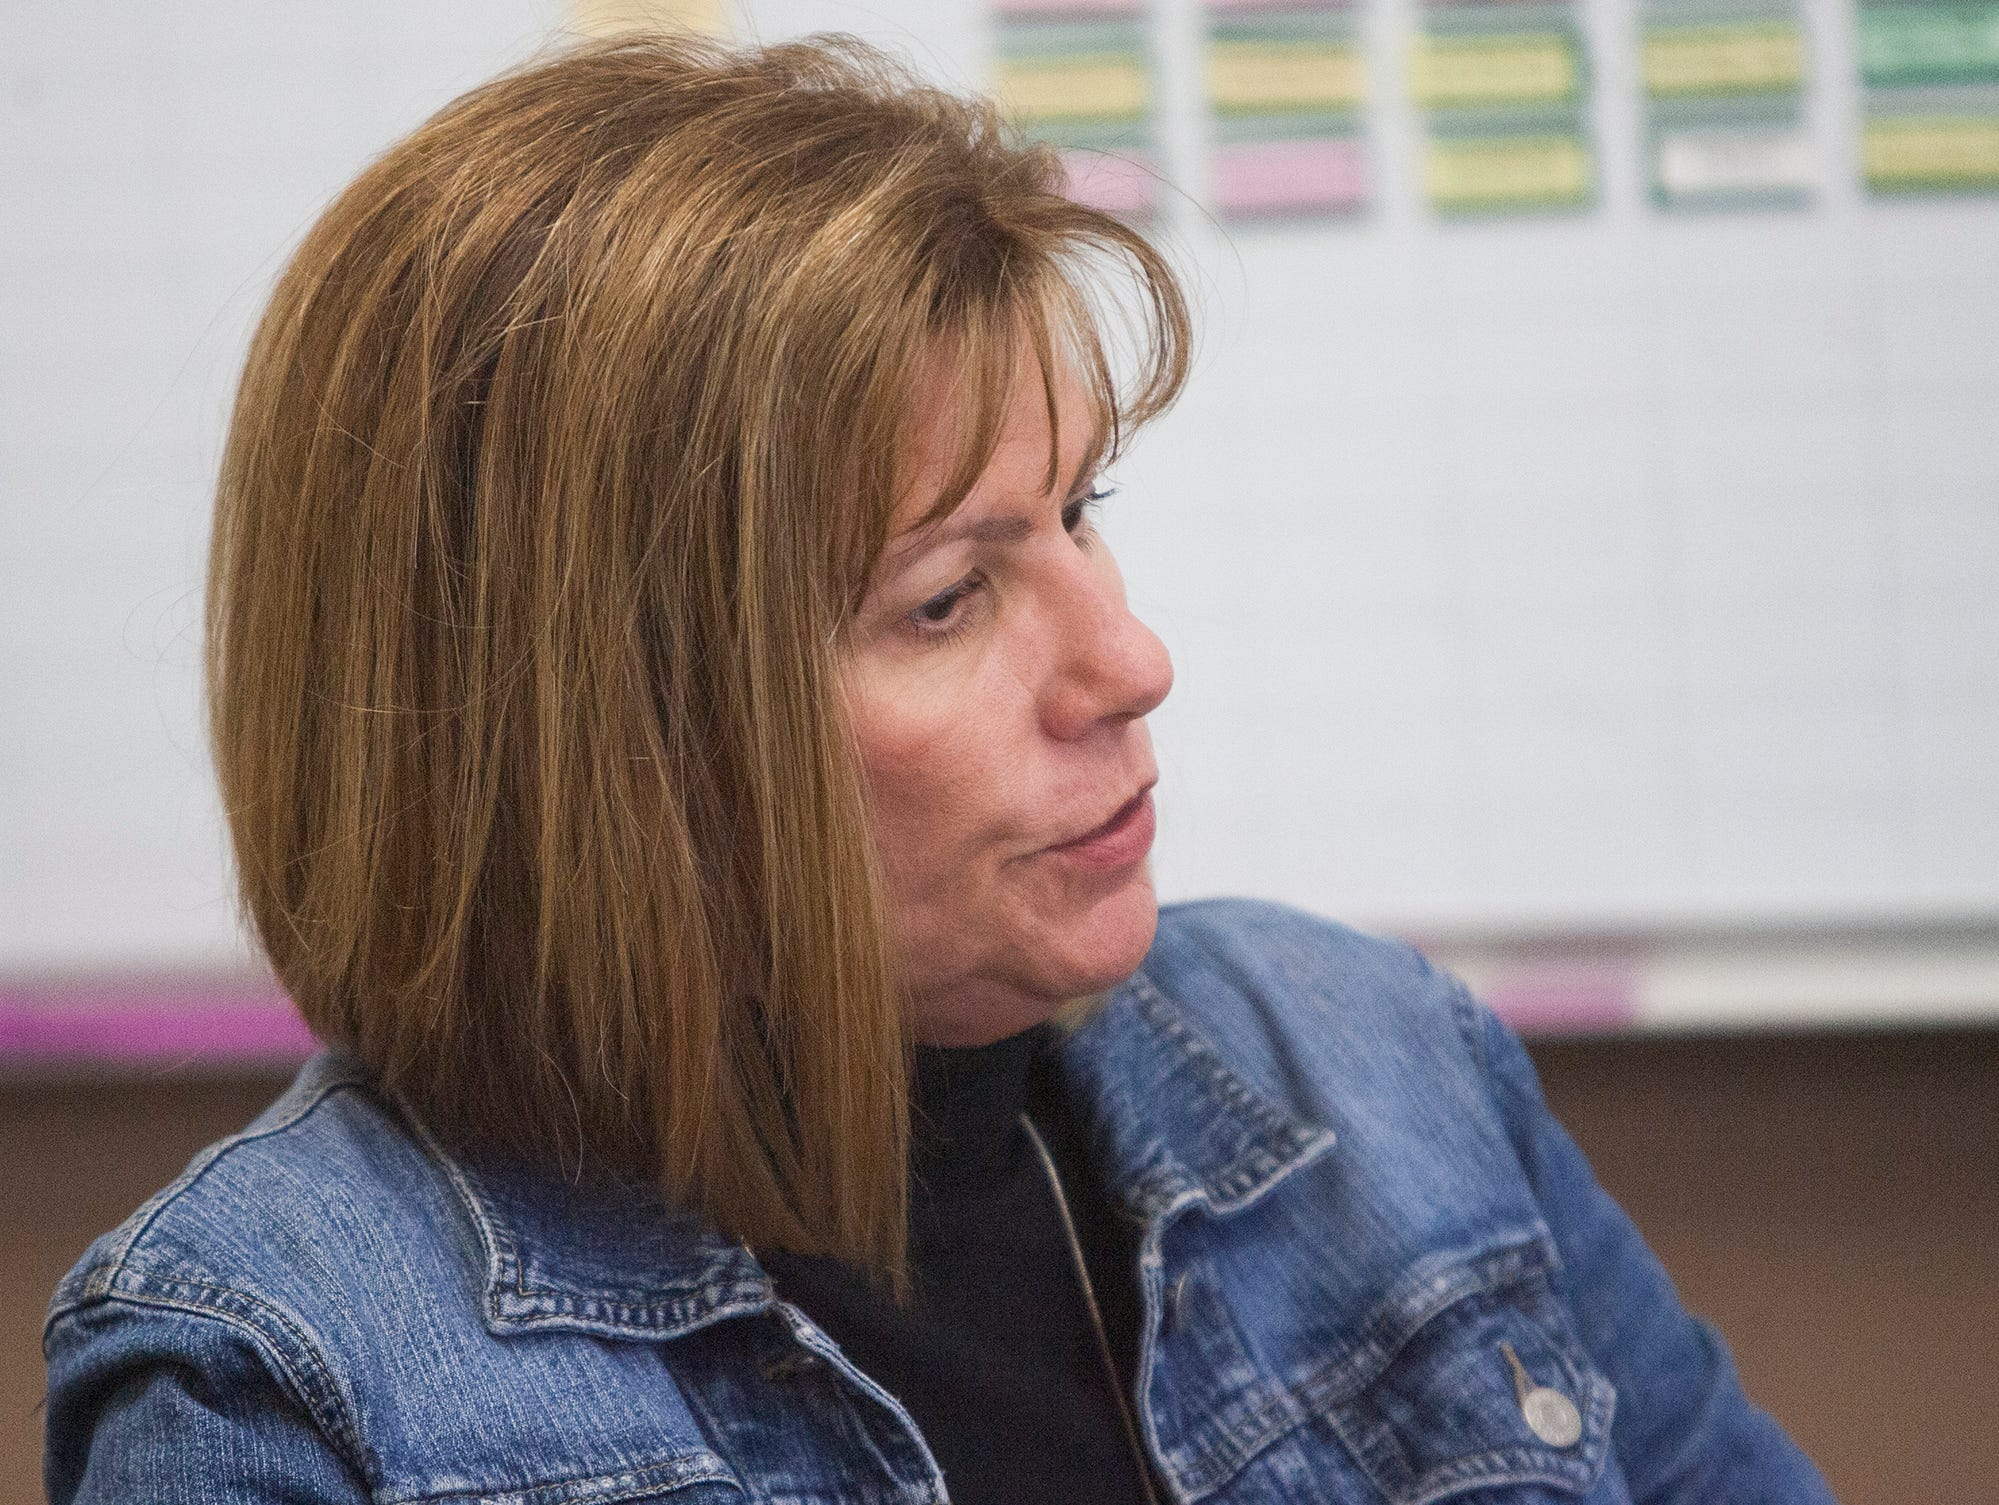 Lori Wrout, an English teacher at Rio Mesa High School, is the coordinator for the school's International Baccalaureate program.